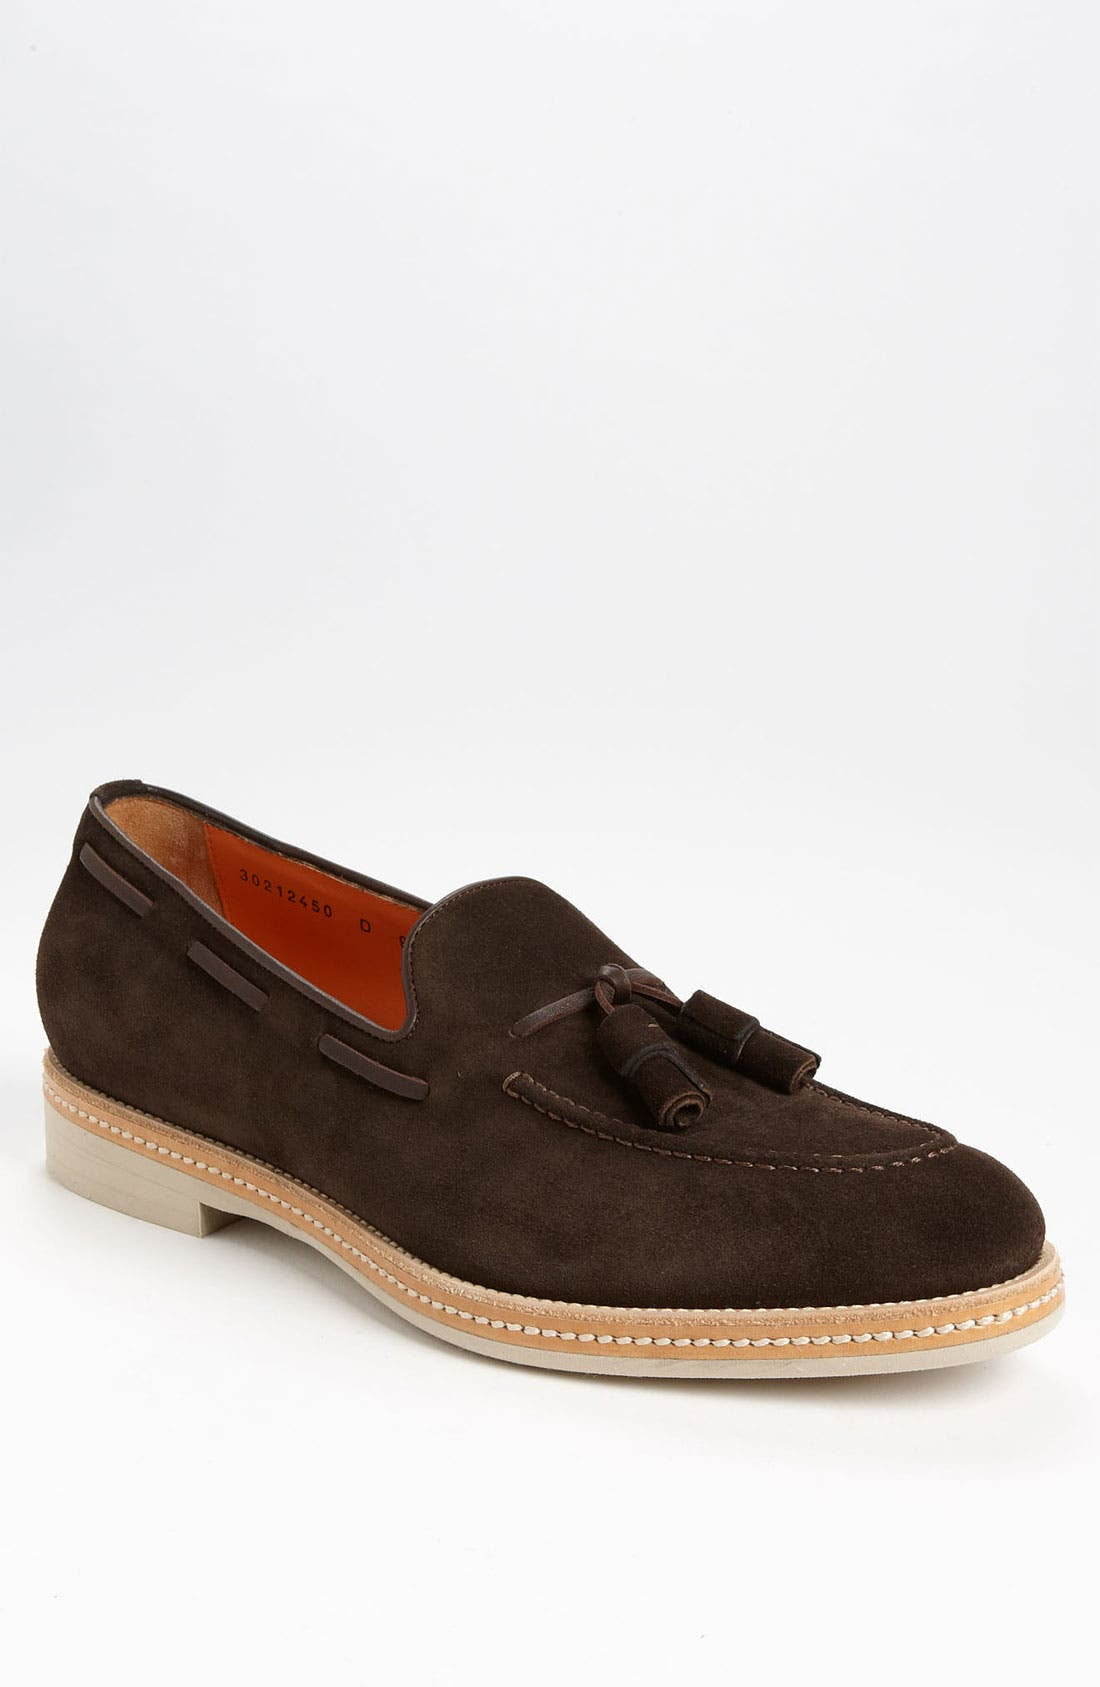 Alternate Image 1 Selected - Santoni 'Terry' Tassel Loafer